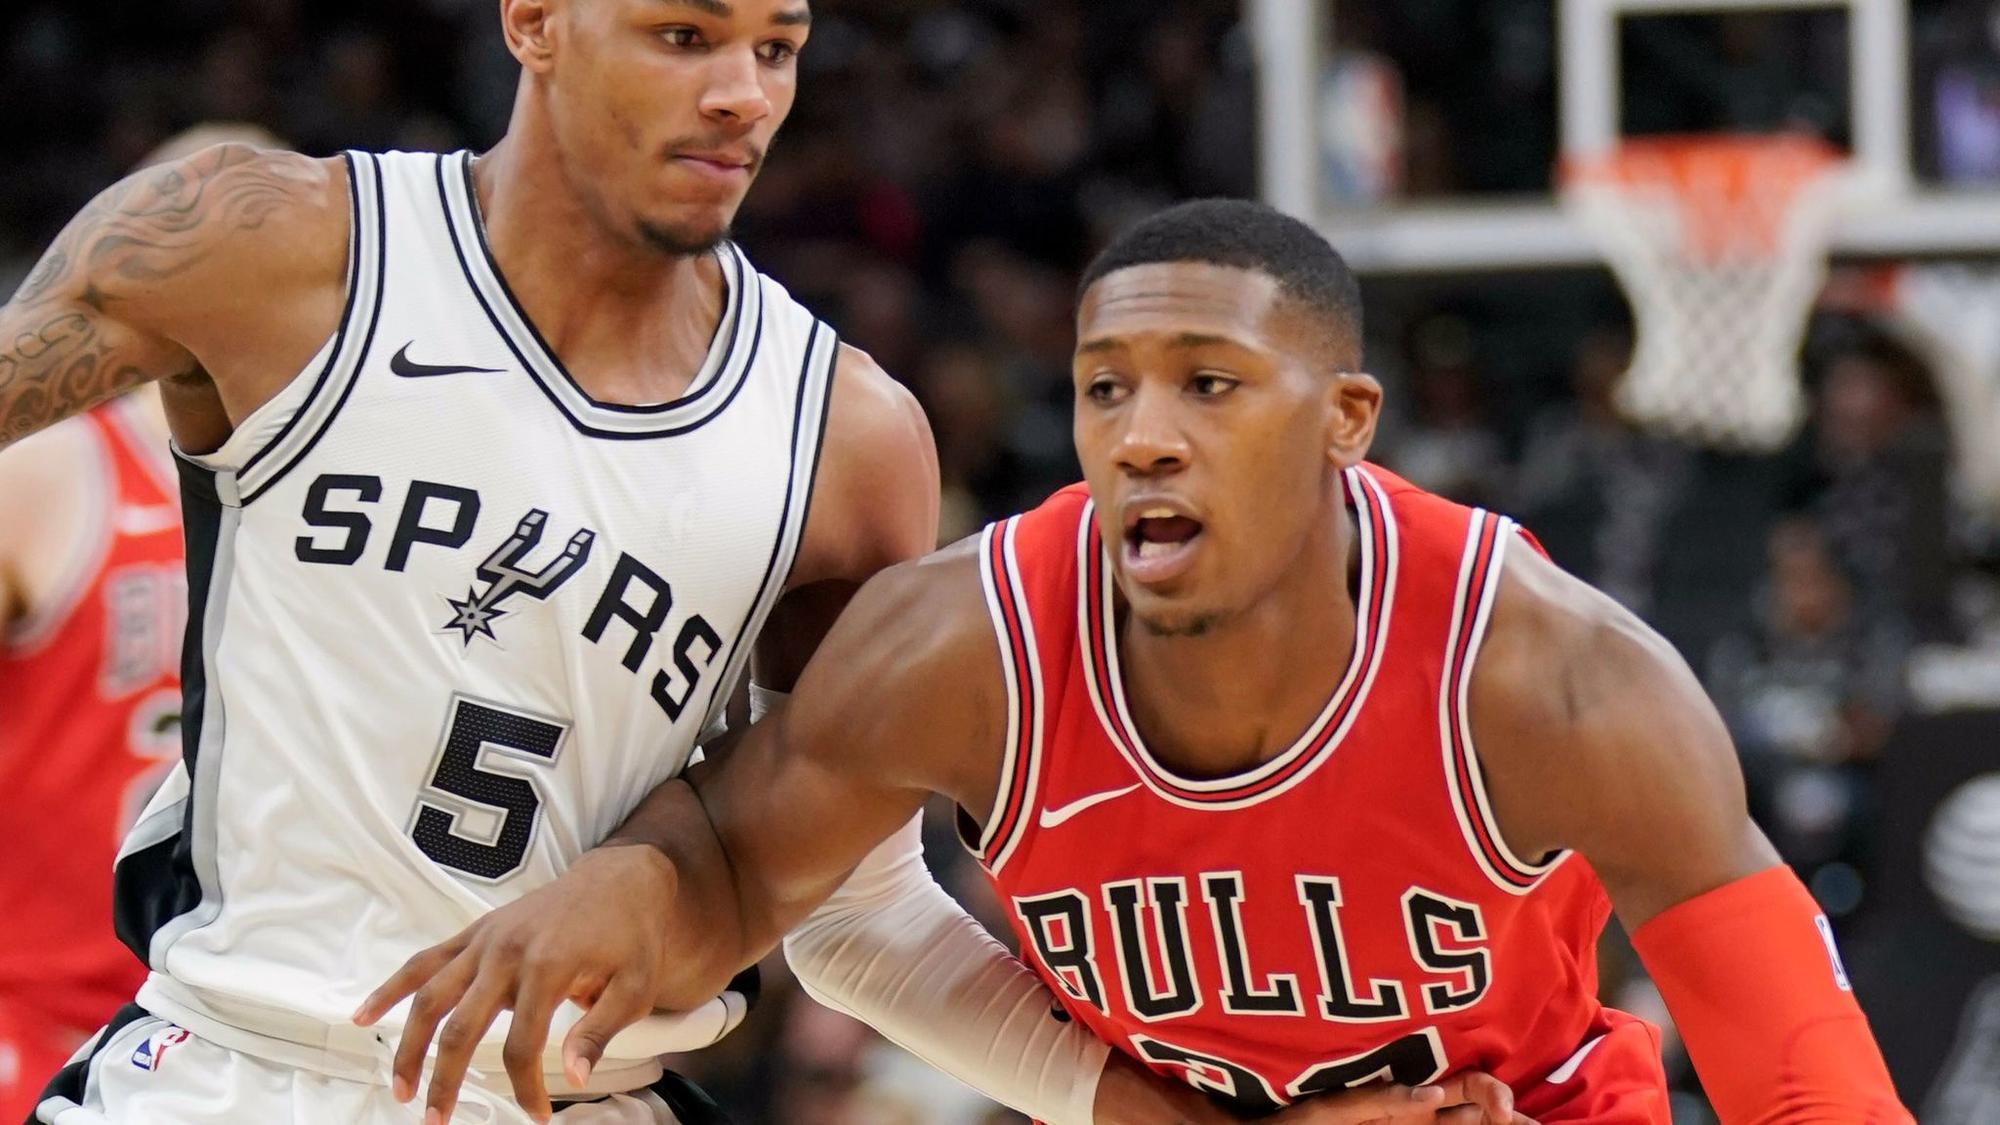 Kris Dunn Scheduled To Make His 1st Bulls Start With Justin Holiday Out    Chicago Tribune